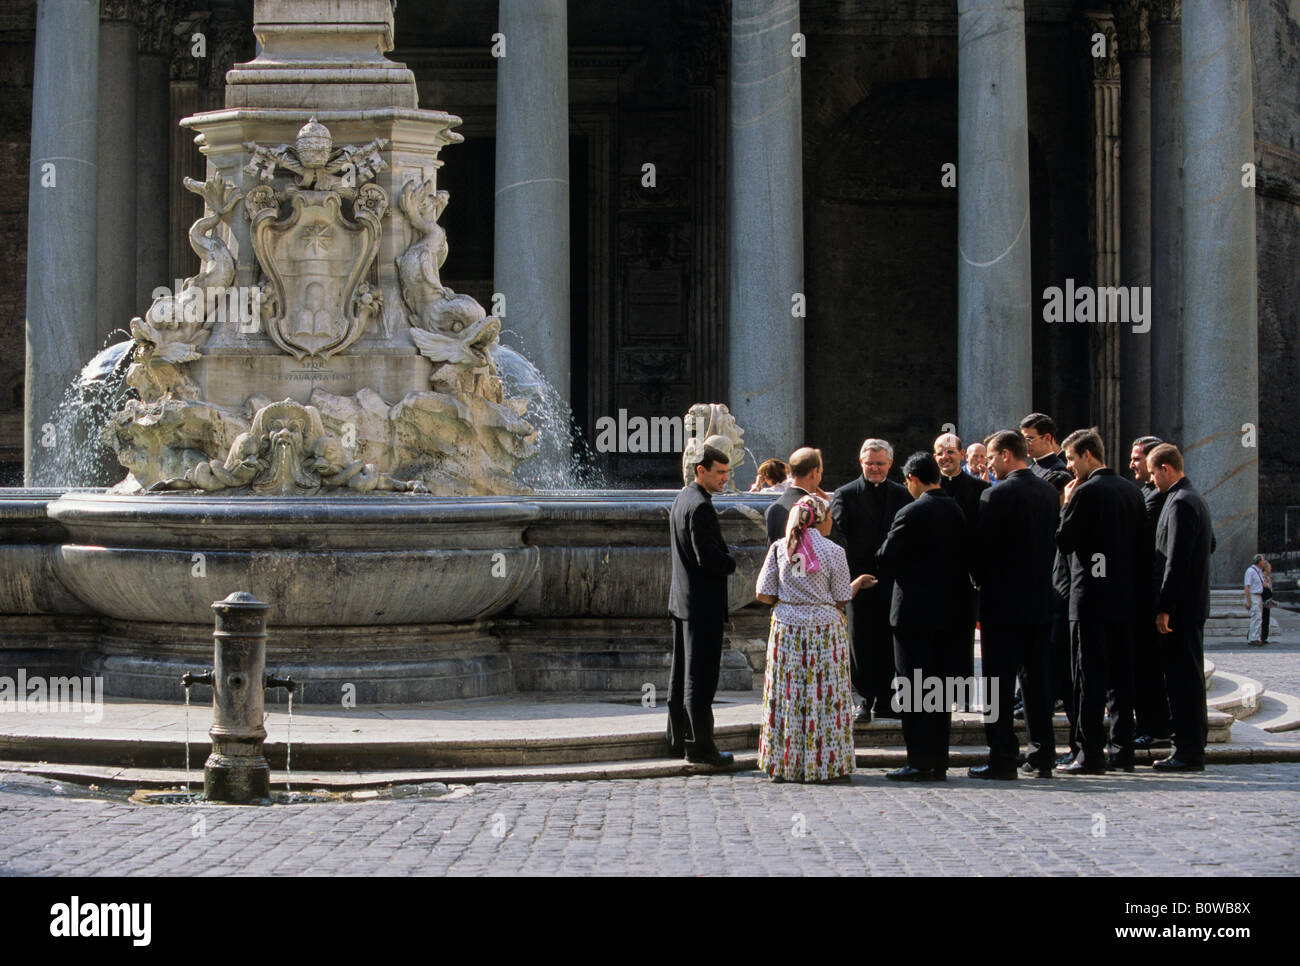 Woman begging from clerics, priests, Pantheon, Fontana di Pantheon, Piazza della Rotonda, Rome, Latium, Italy - Stock Image